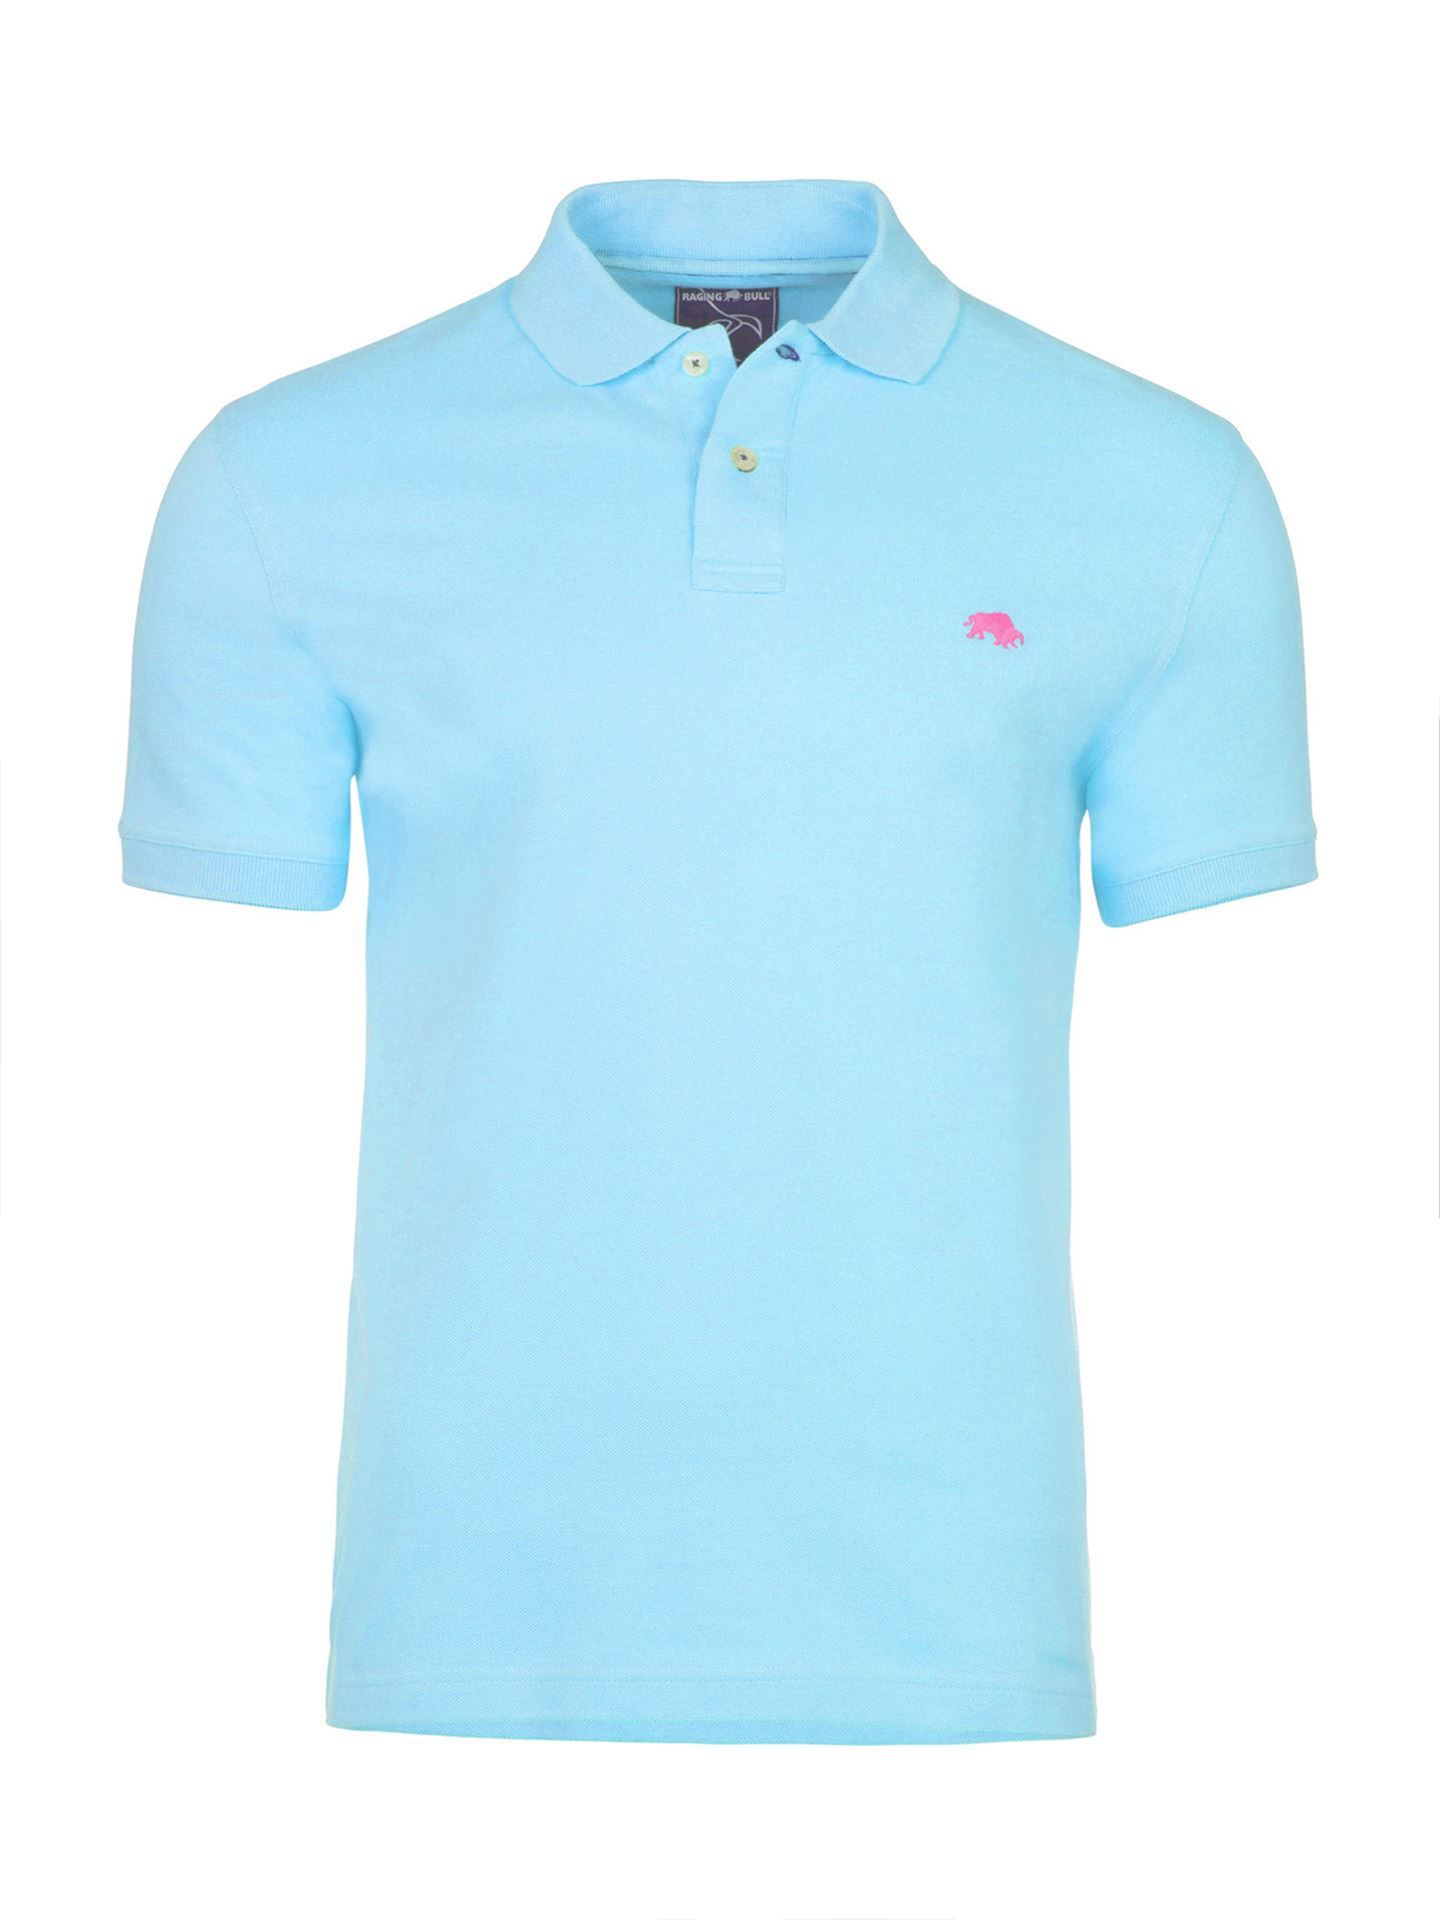 Men's Raging Bull Fly Fit Plain Polo, Sky Blue